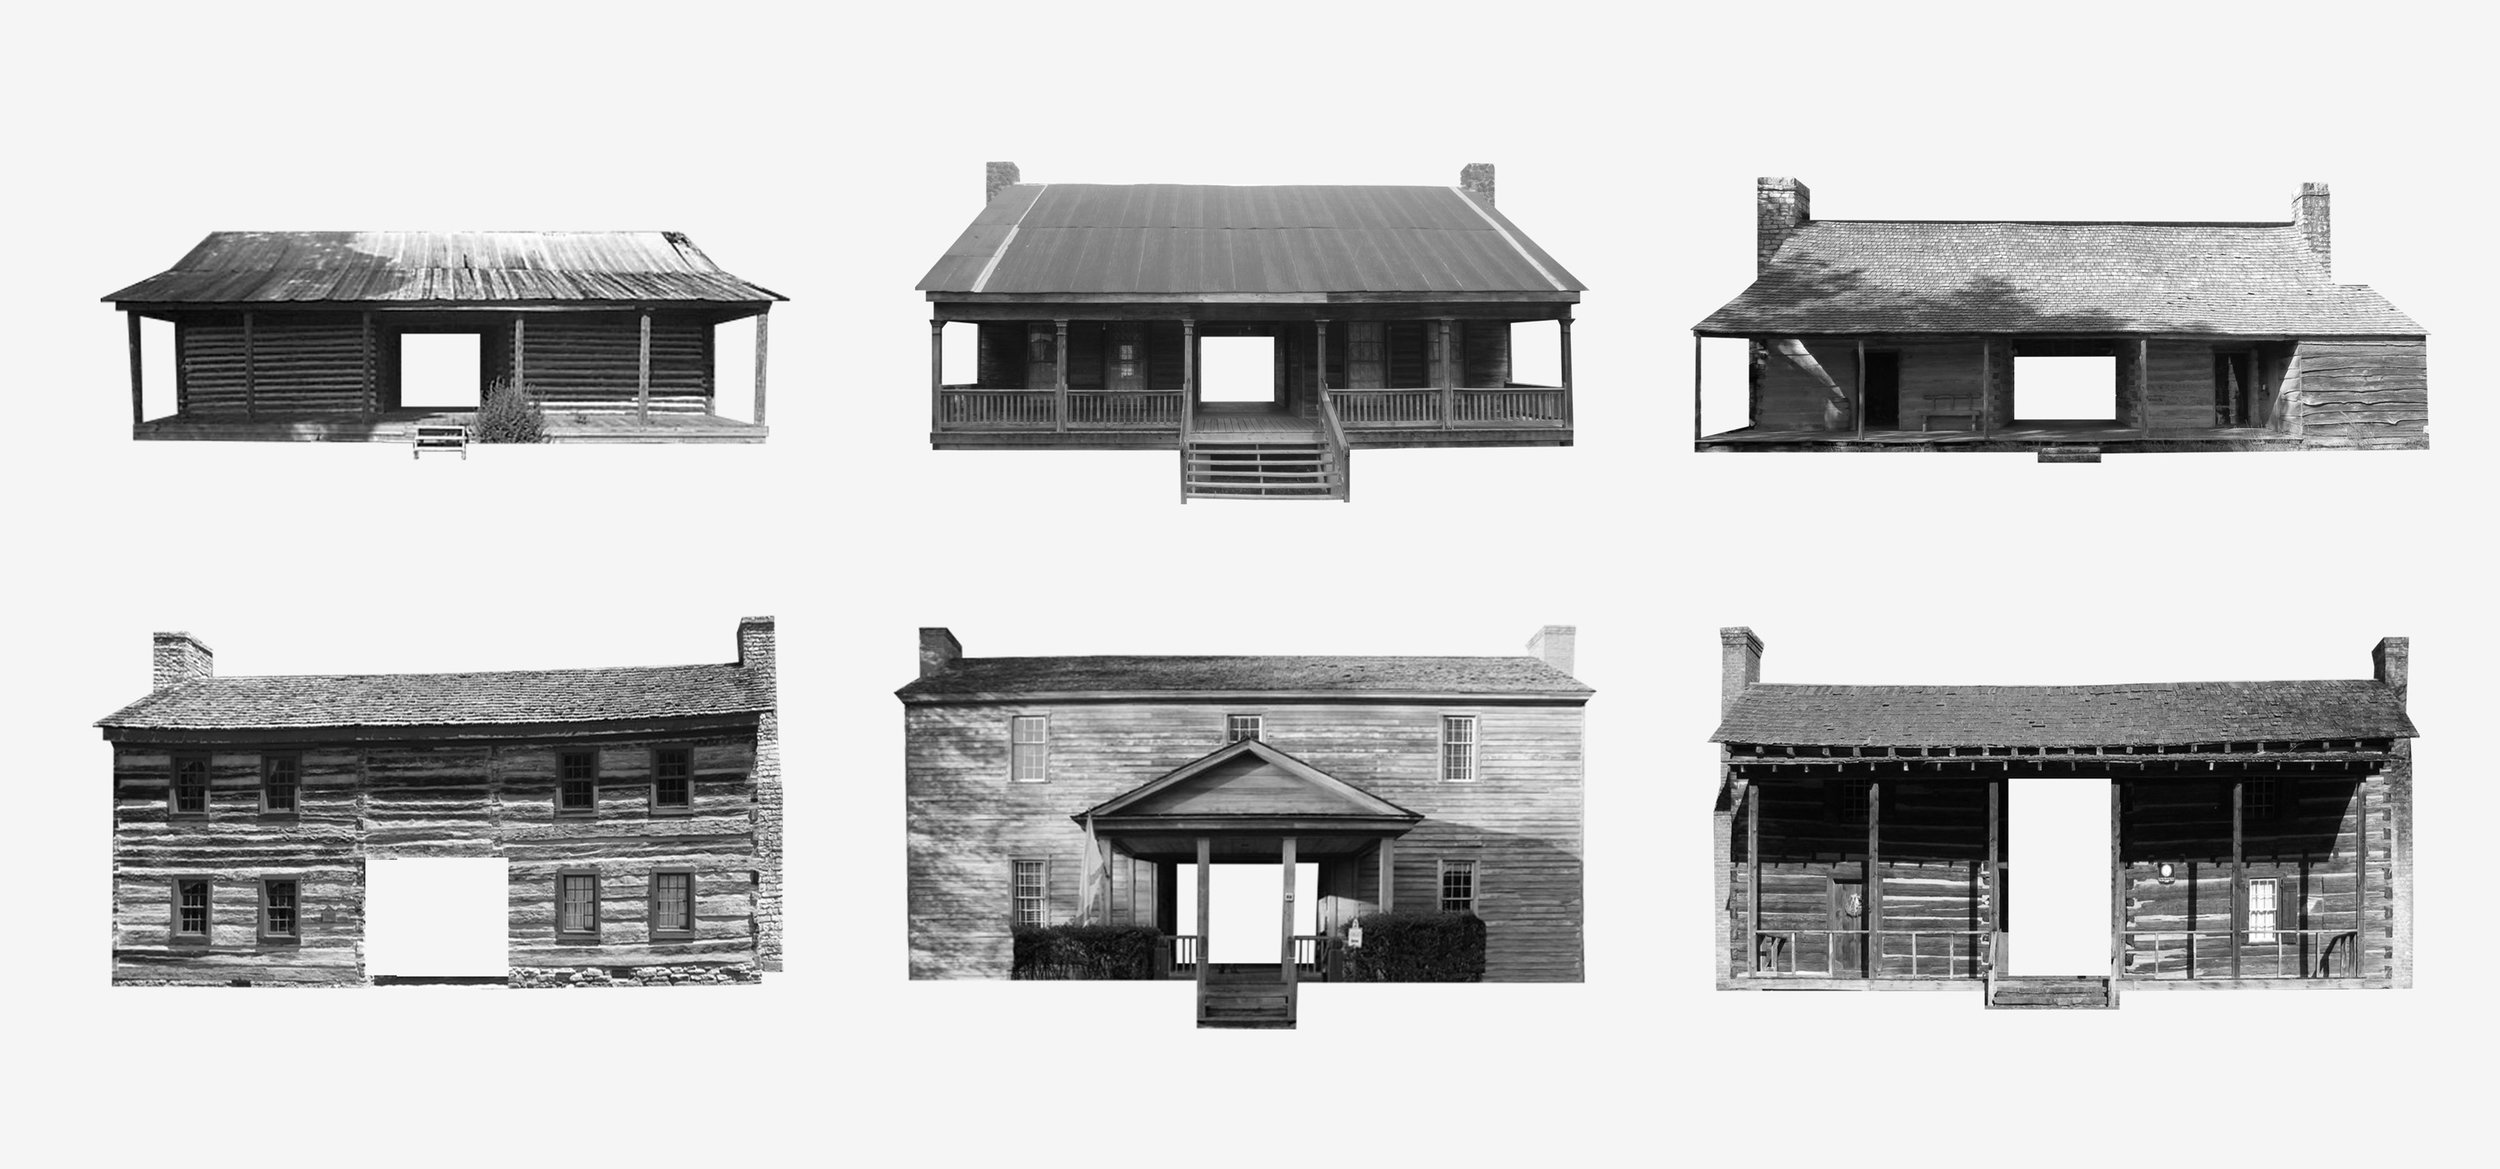 New History One and Two Story Dogtrots are prevalent in the American South.